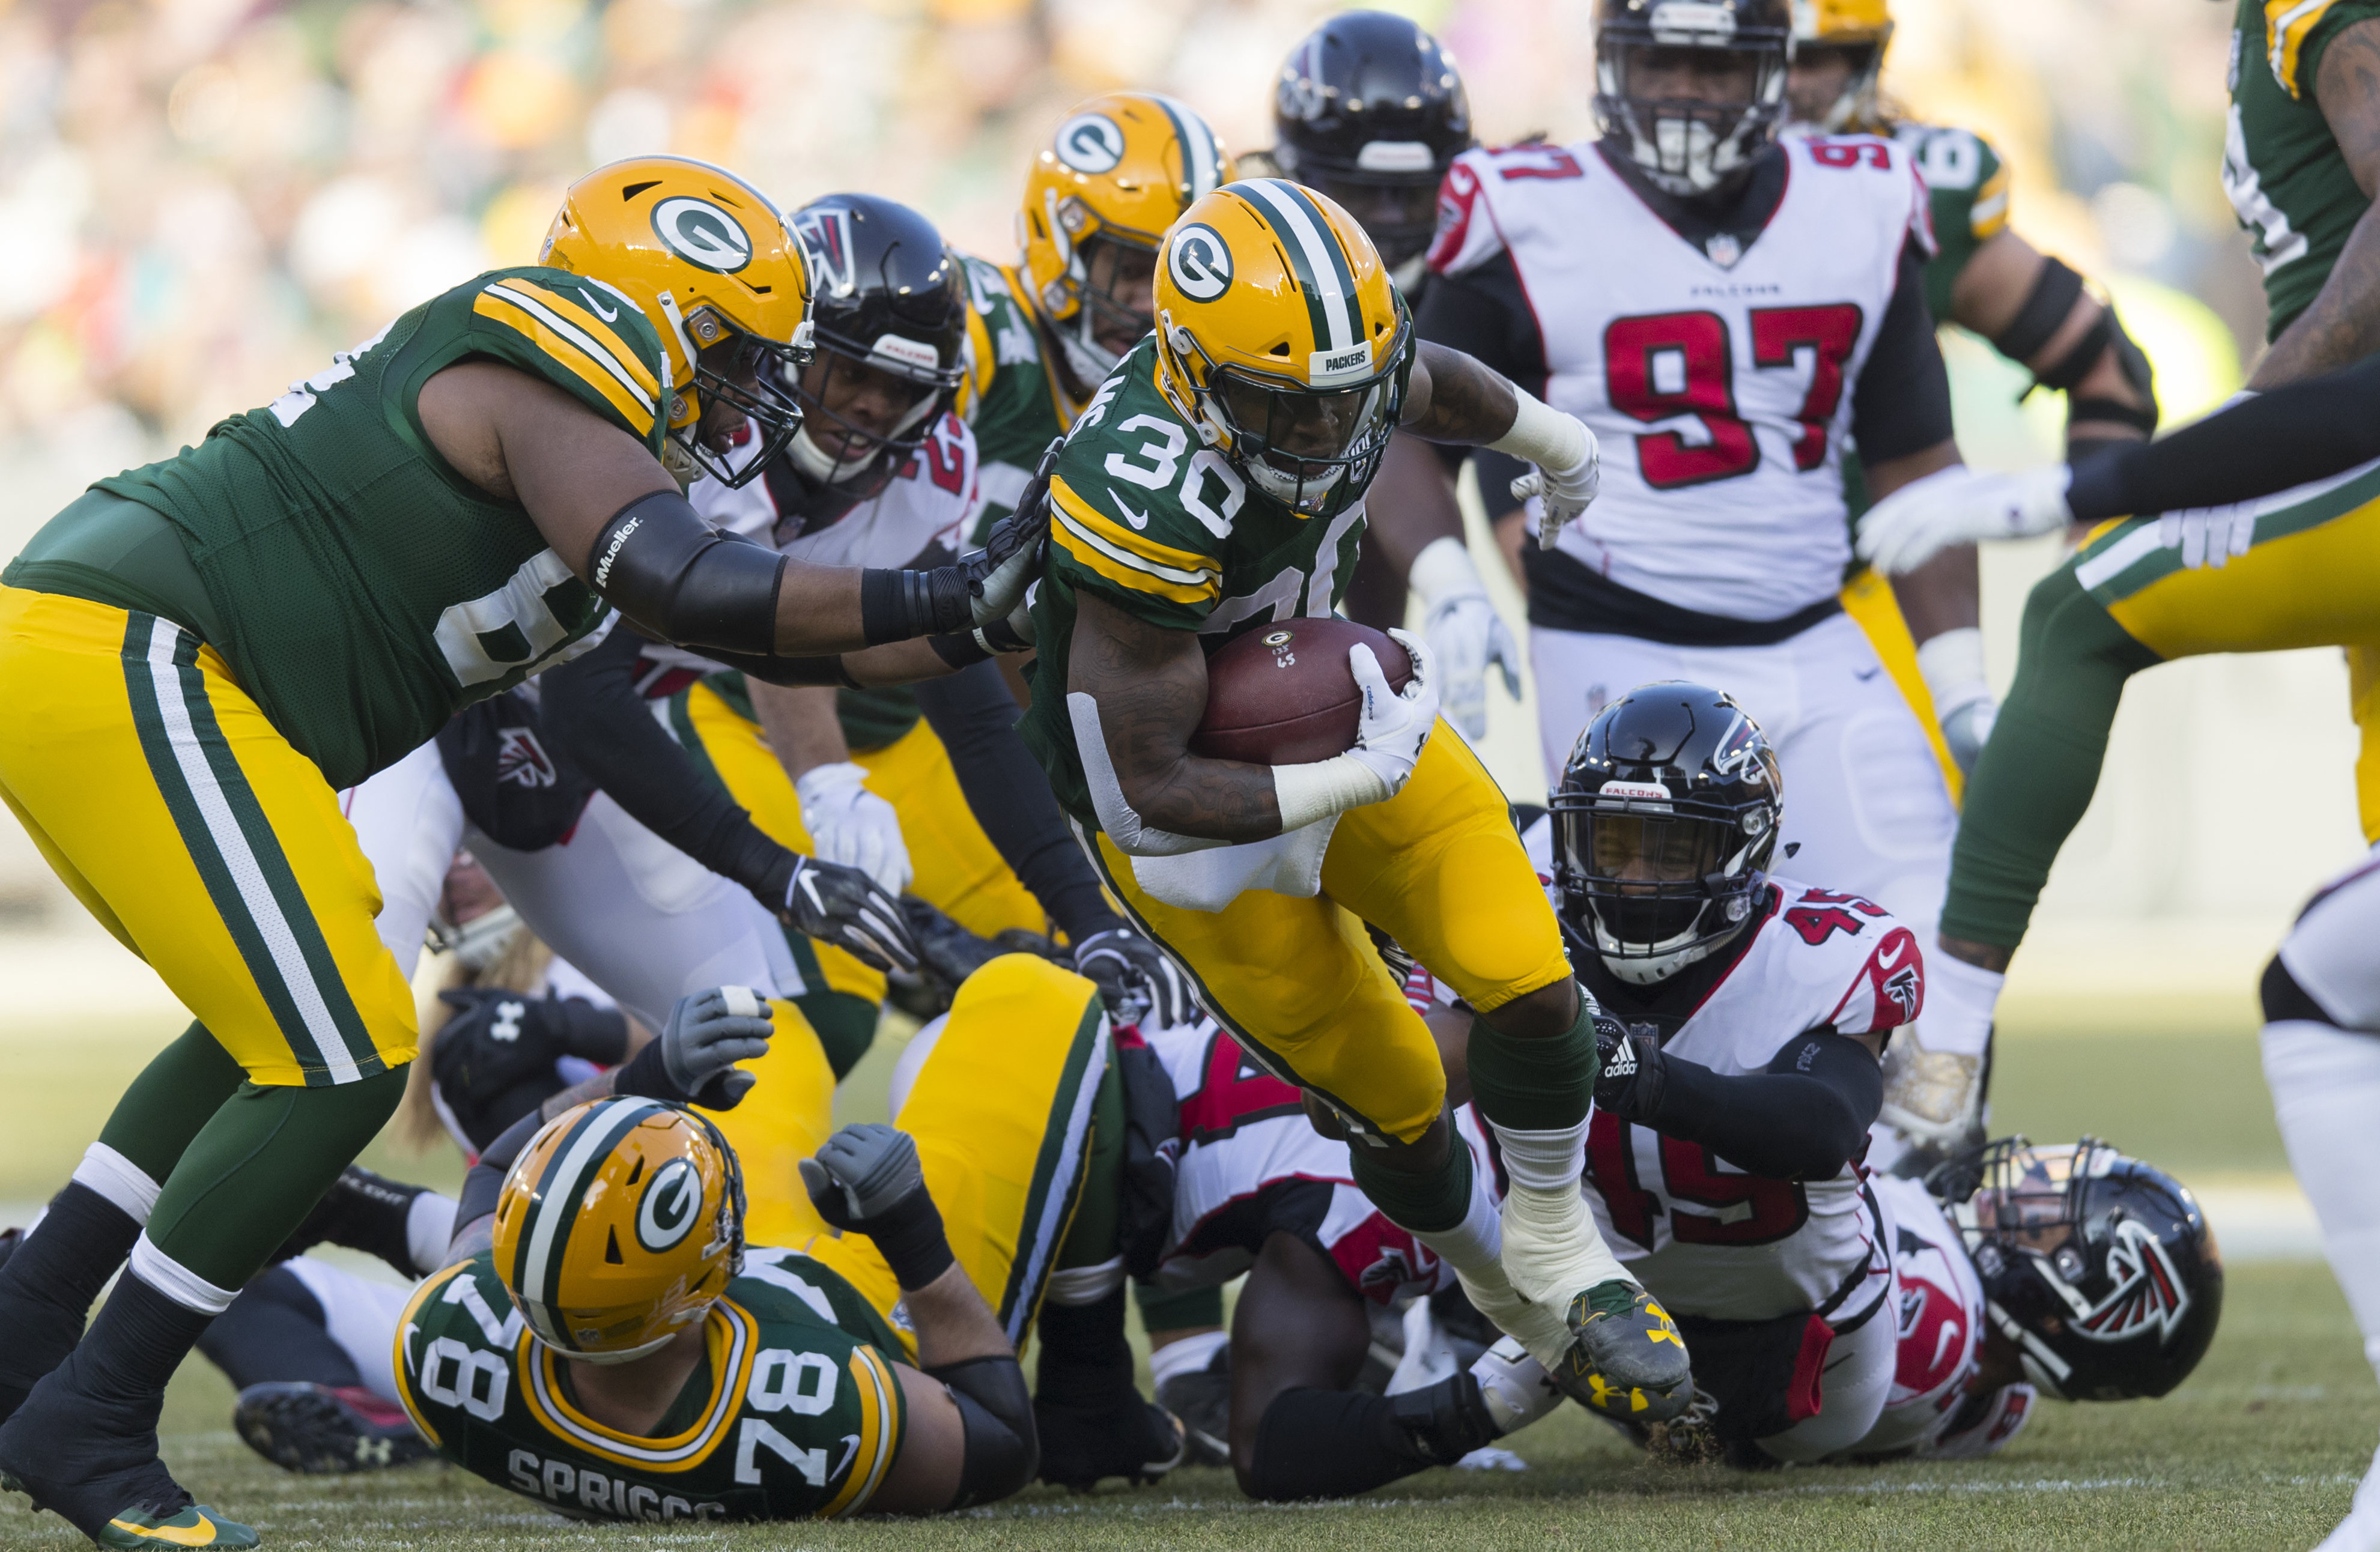 Dec 9, 2018; Green Bay, WI, USA; Green Bay Packers running back Jamaal Williams (30) rushes with the football during the first quarter against the Atlanta Falcons at Lambeau Field. Mandatory Credit: Jeff Hanisch-USA TODAY Sports